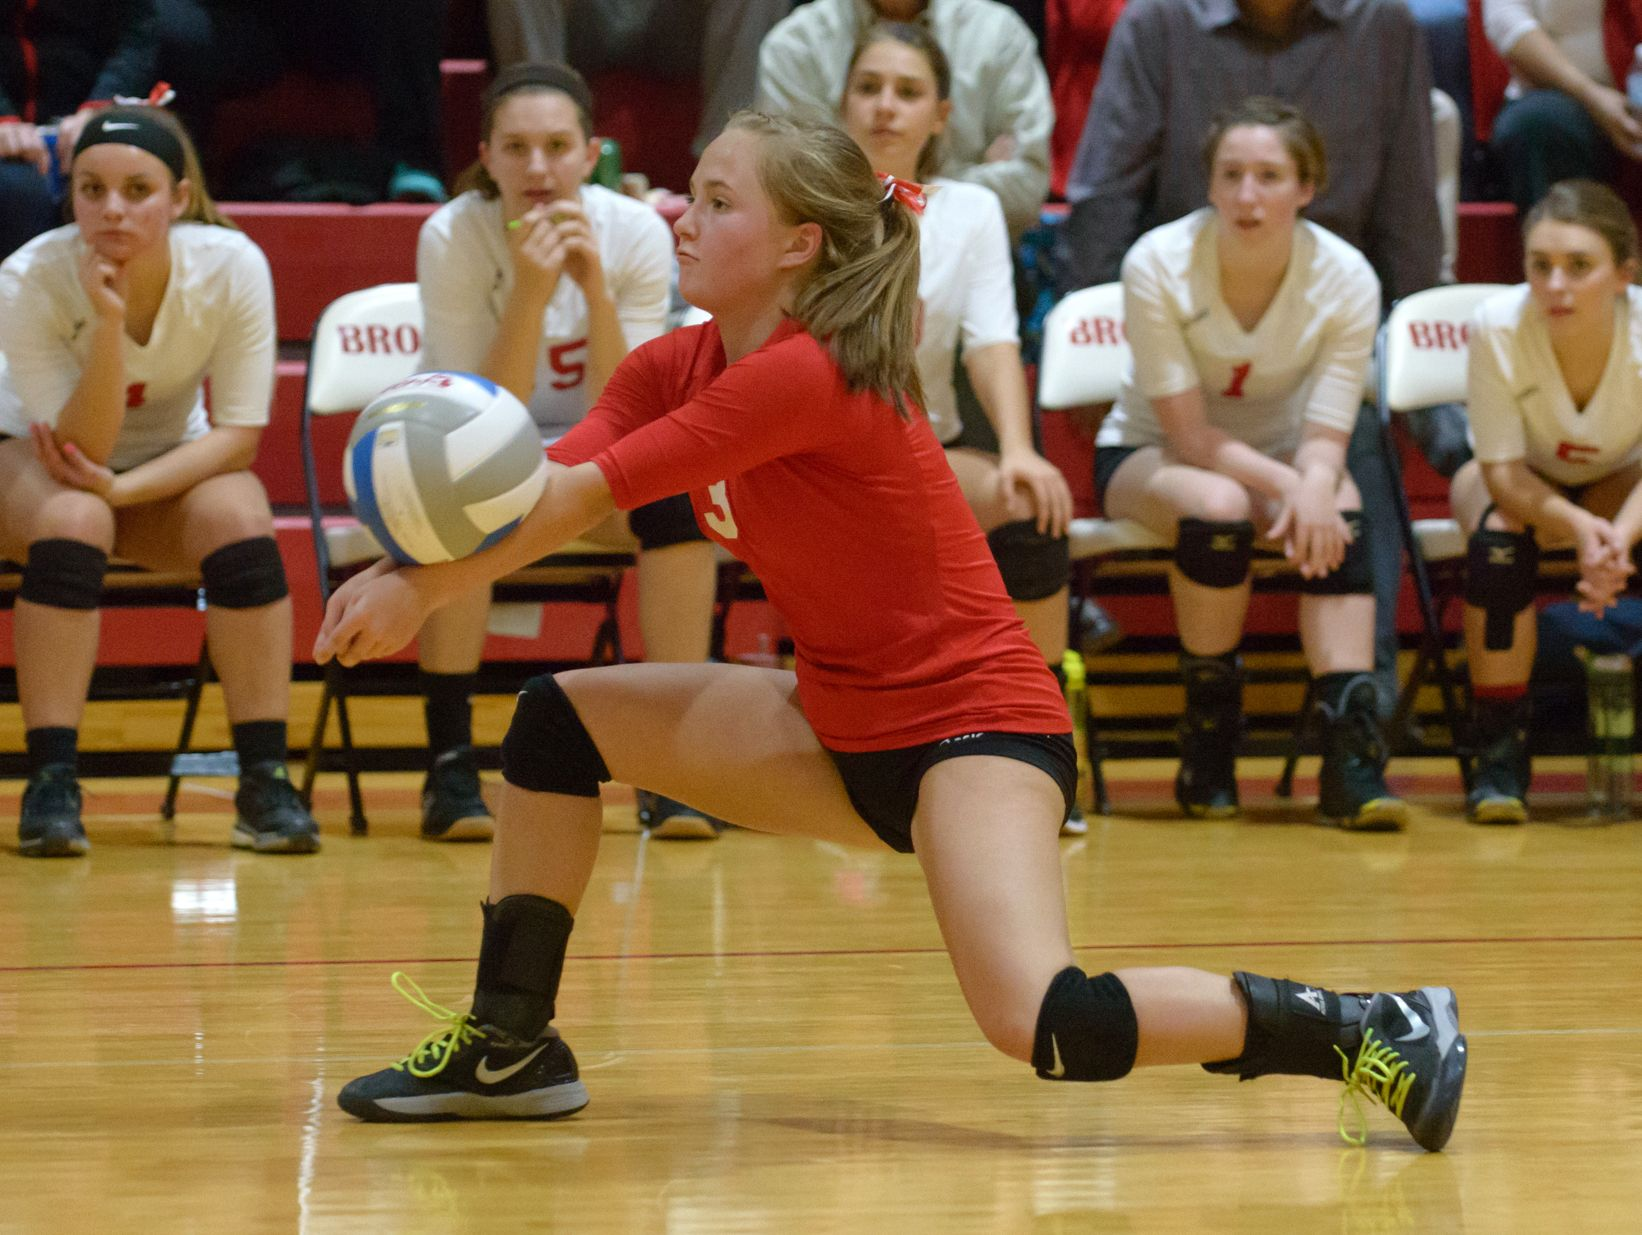 St. Philip's Alexis Pessetti (3) in game action Tuesday night.